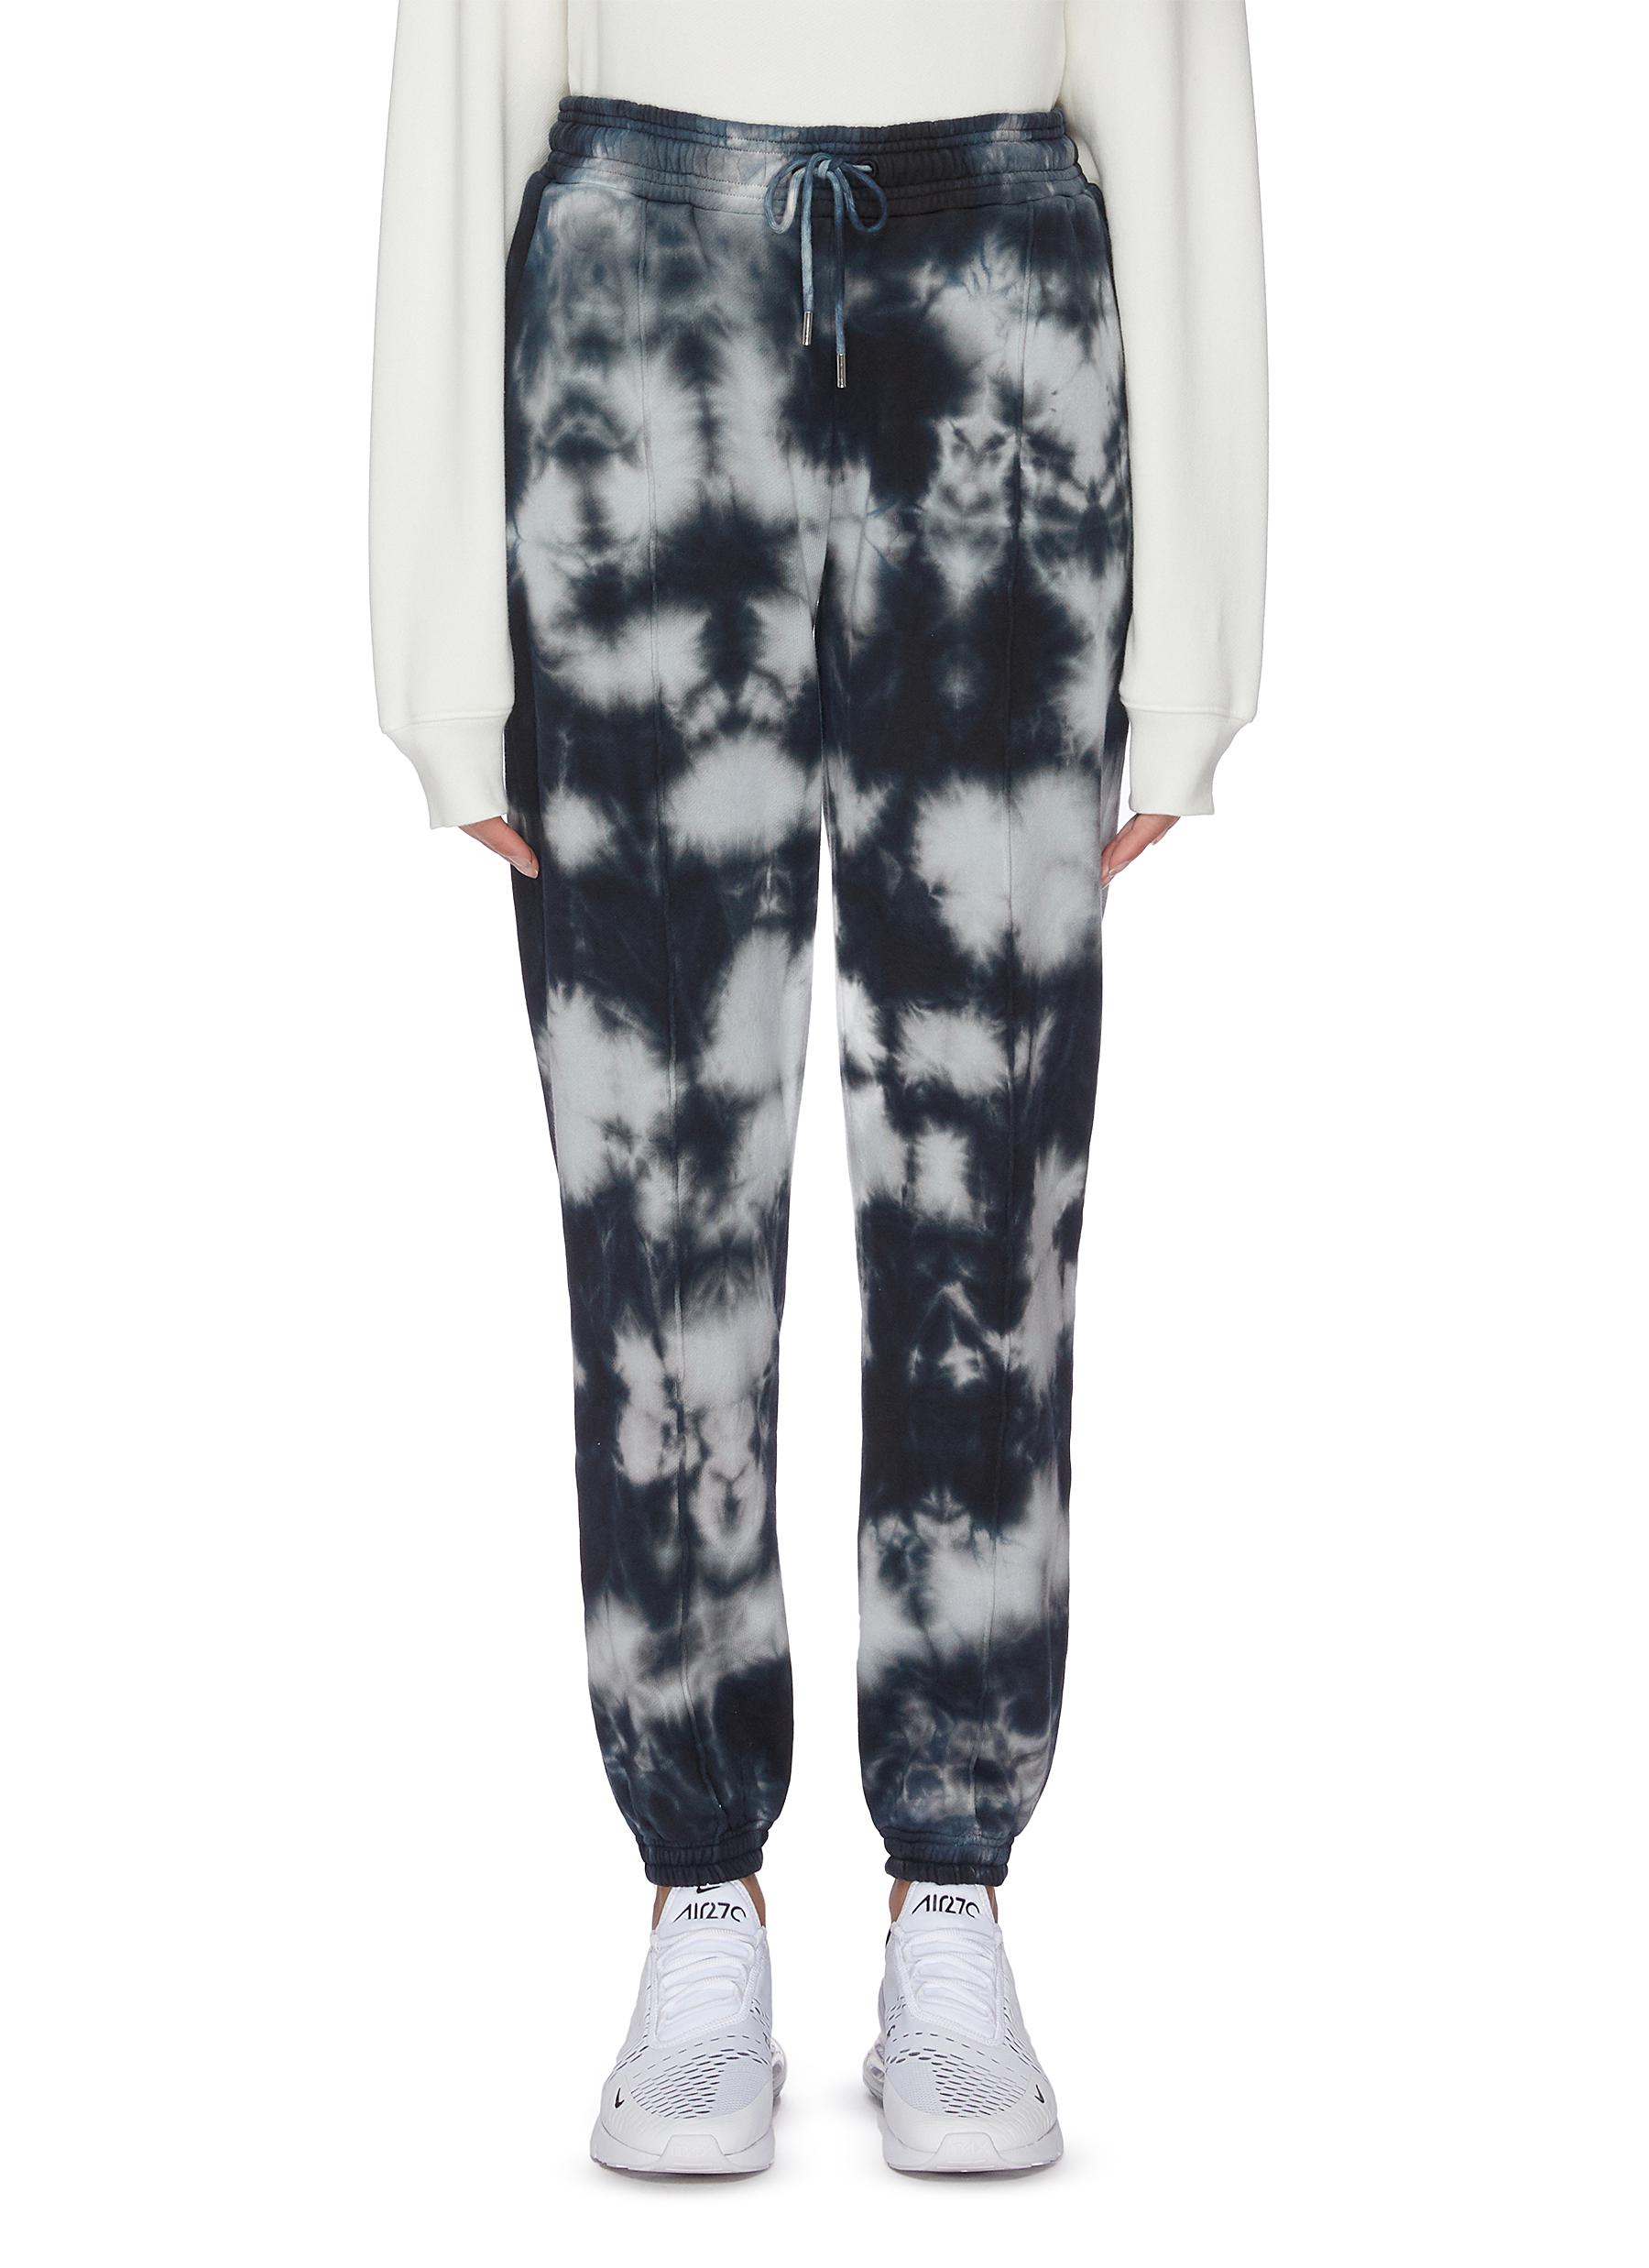 shop Ninety Percent Tie dye sweatpants online